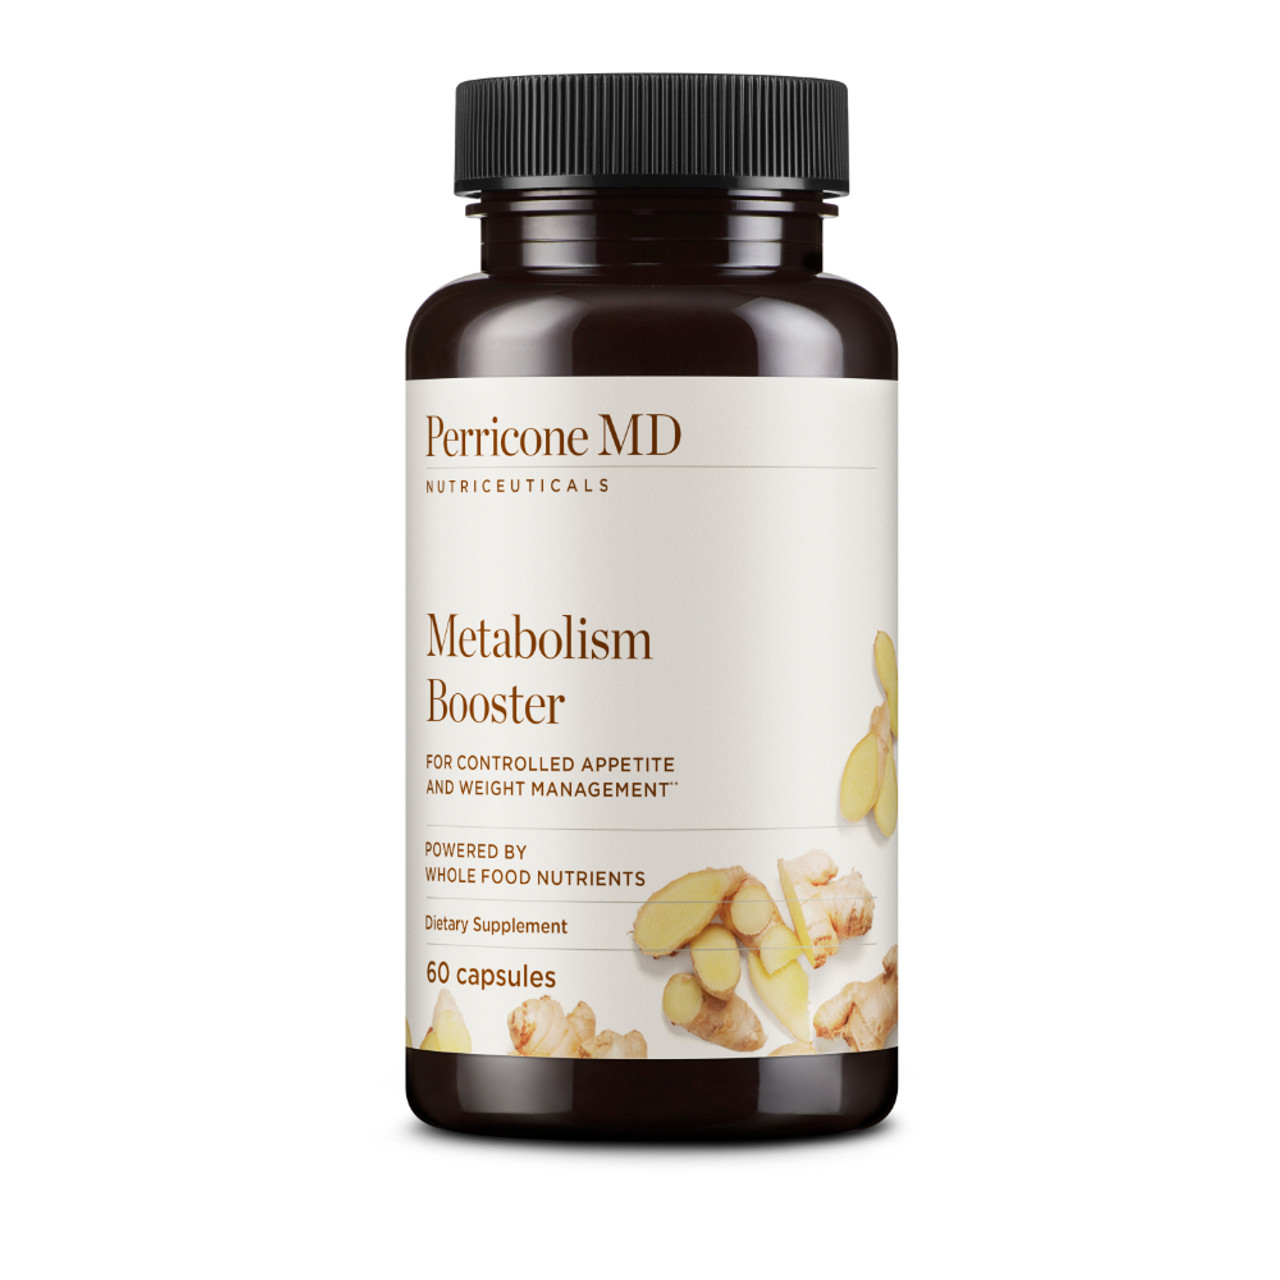 Perricone MD Metabolism Booster